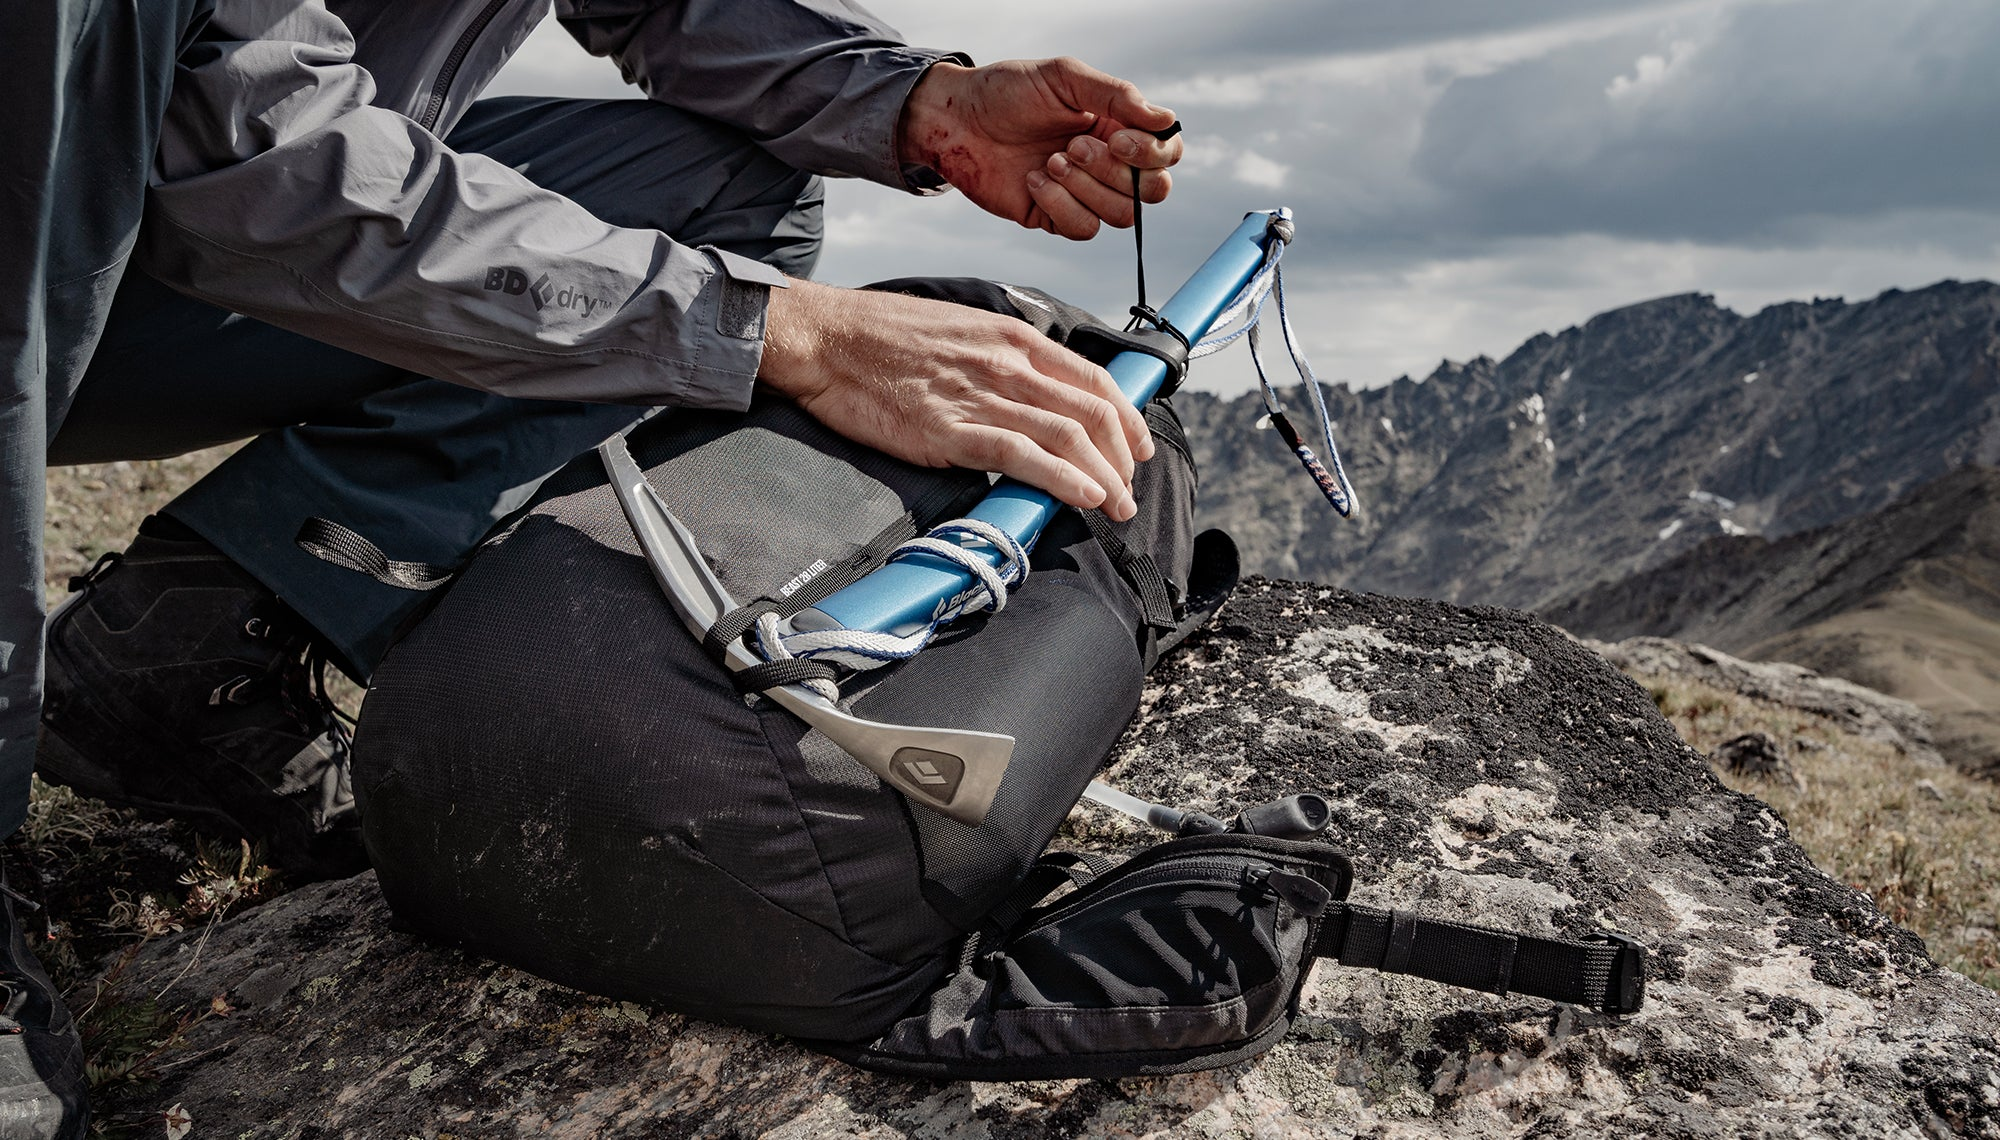 Man attaching ice axe to backpack